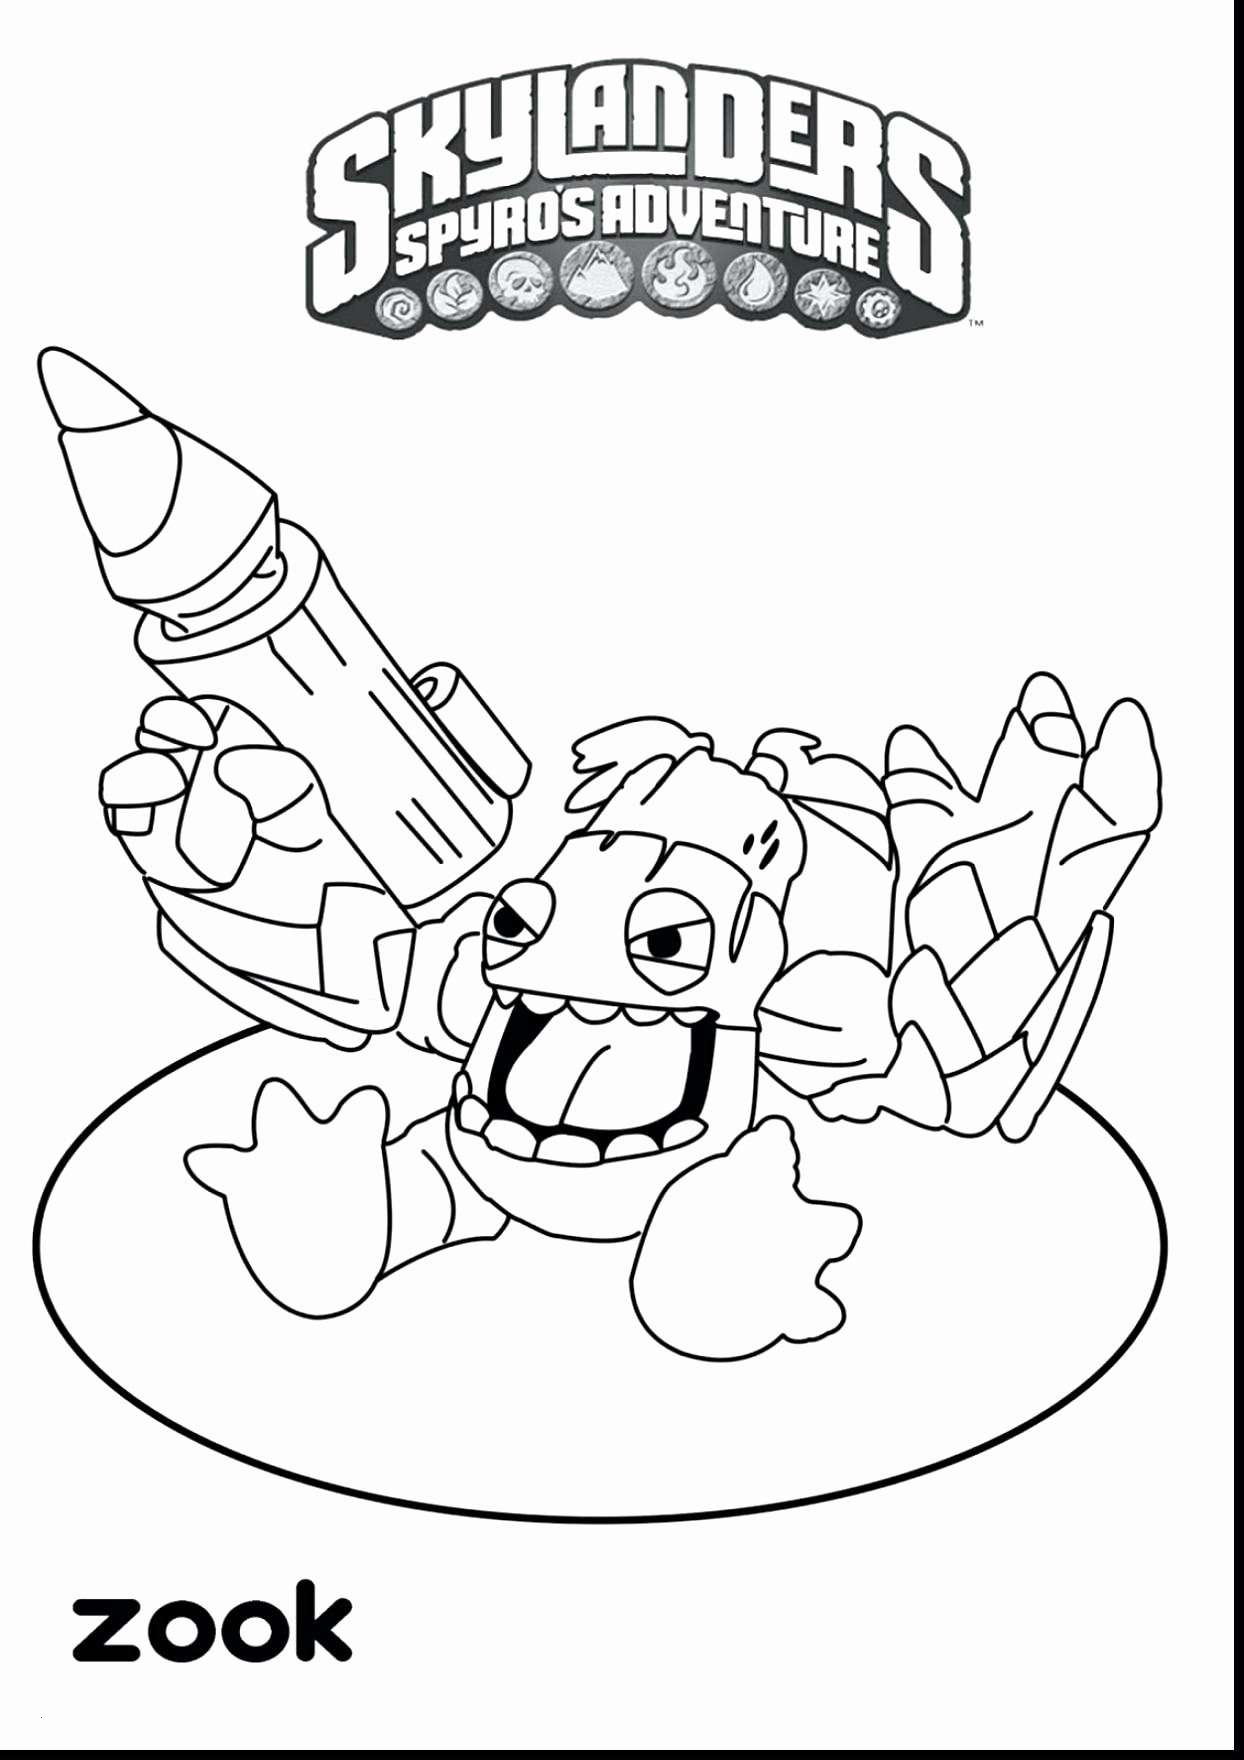 Indian Coloring Pages  to Print 17r - Save it to your computer